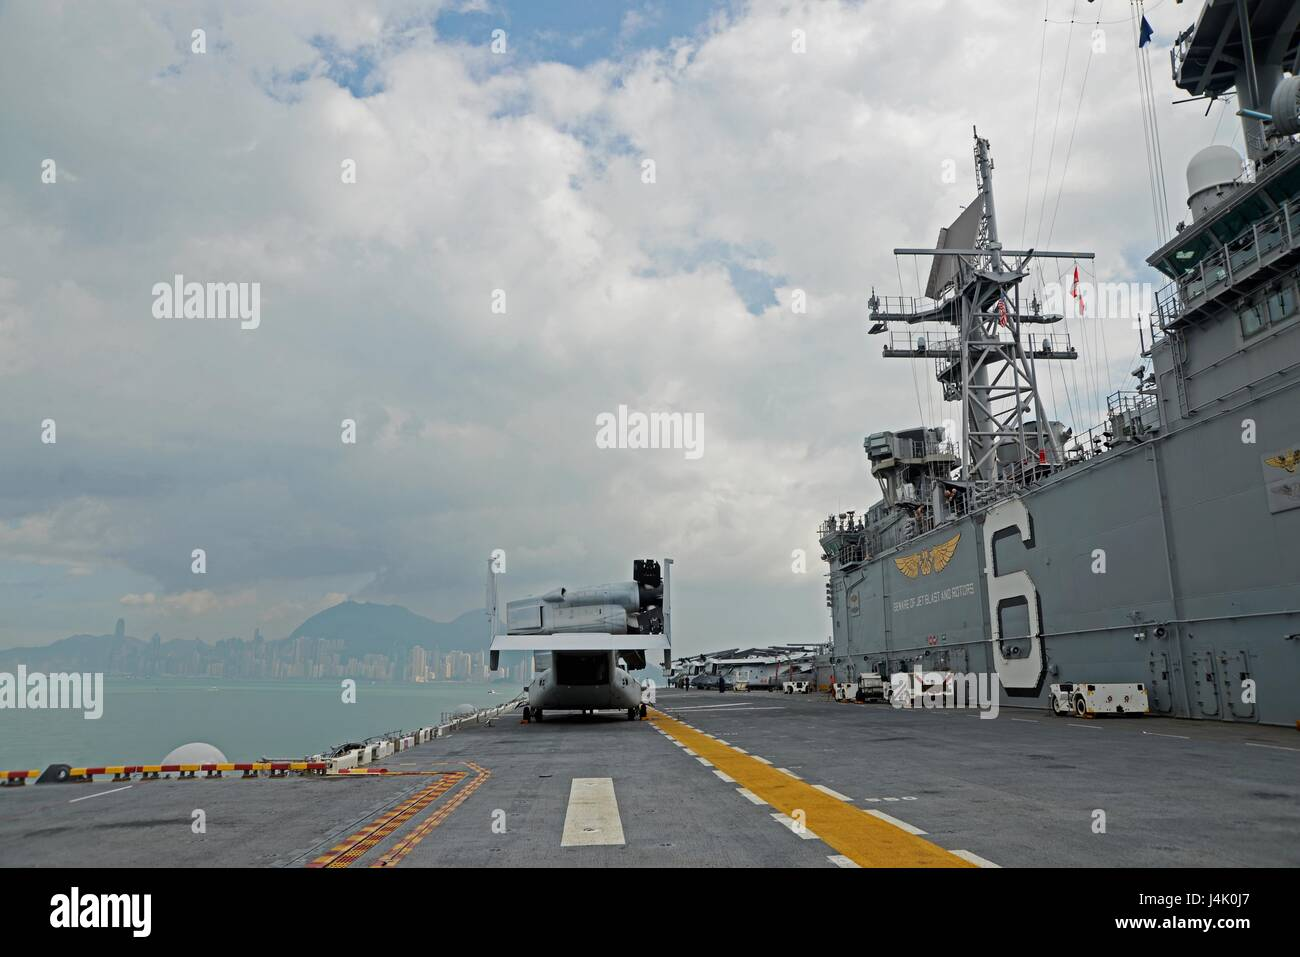 161002-N-YG104-004 HONG KONG (Oct. 02, 2016) The amphibious assault ship USS Bonhomme Richard (LHD 6) departs the Stock Photo